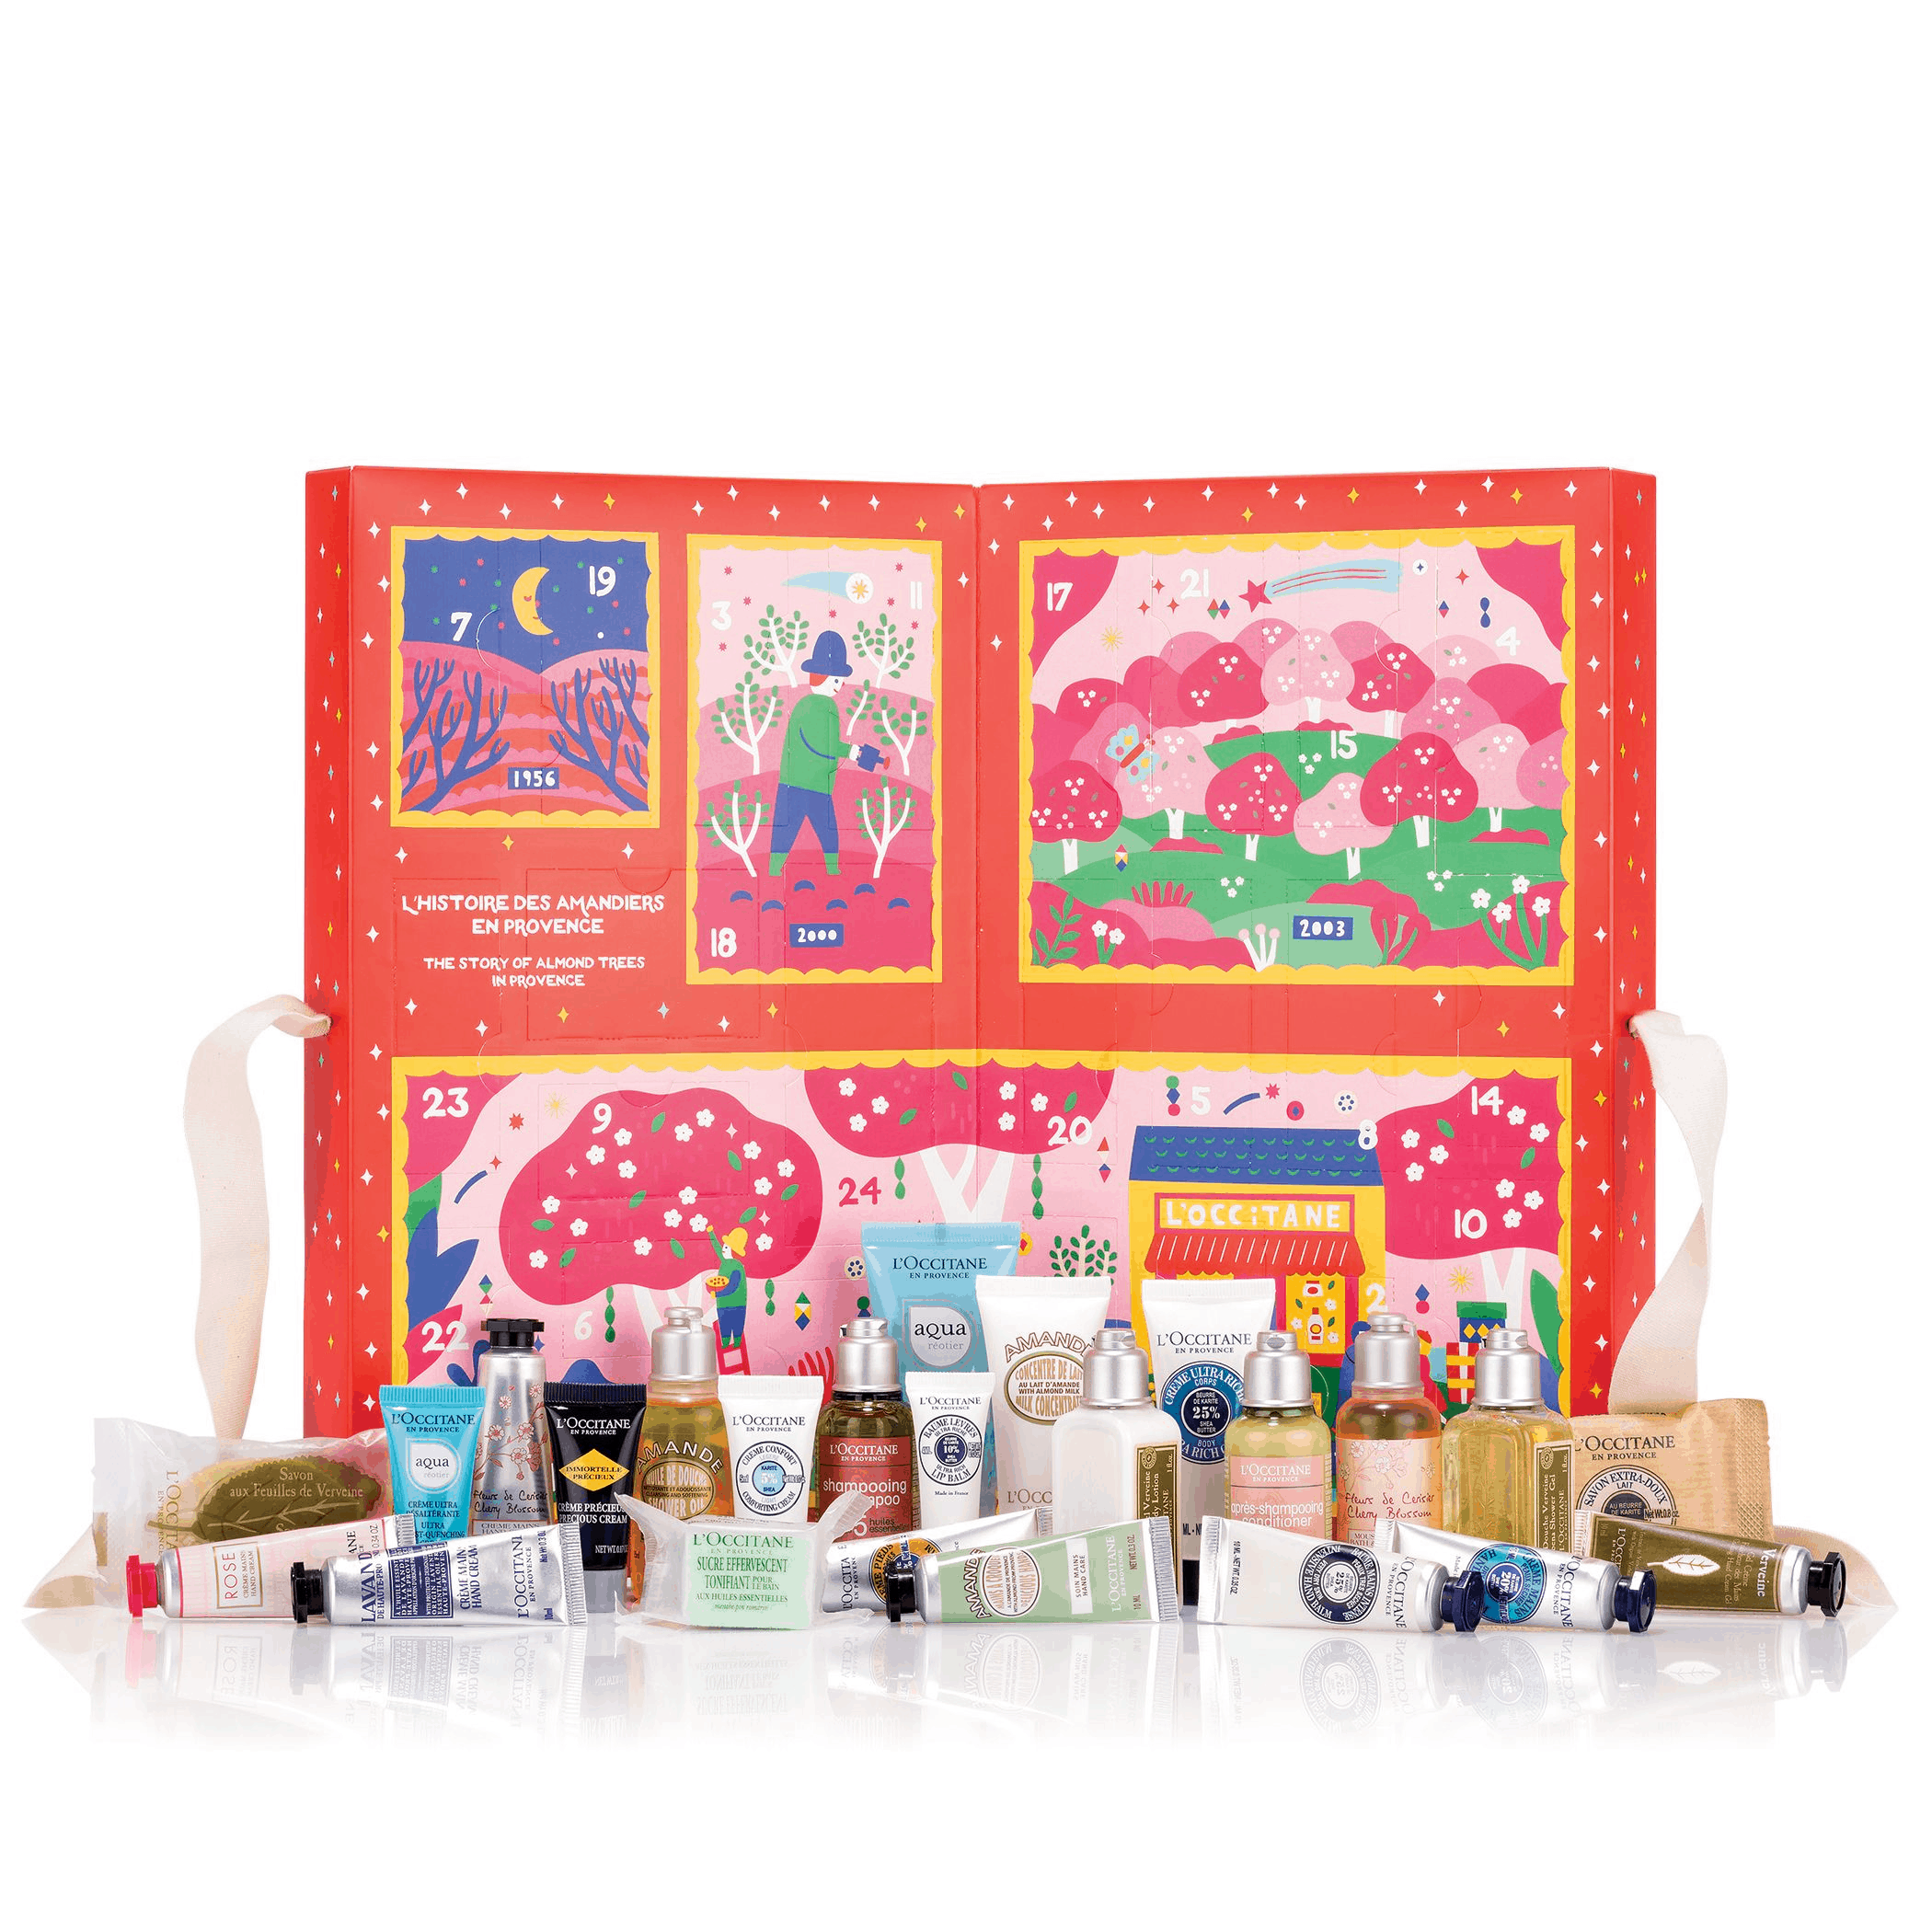 L'Occitane 2019 Luxury Beauty Advent Calendar Coming Soon + Full Spoilers!